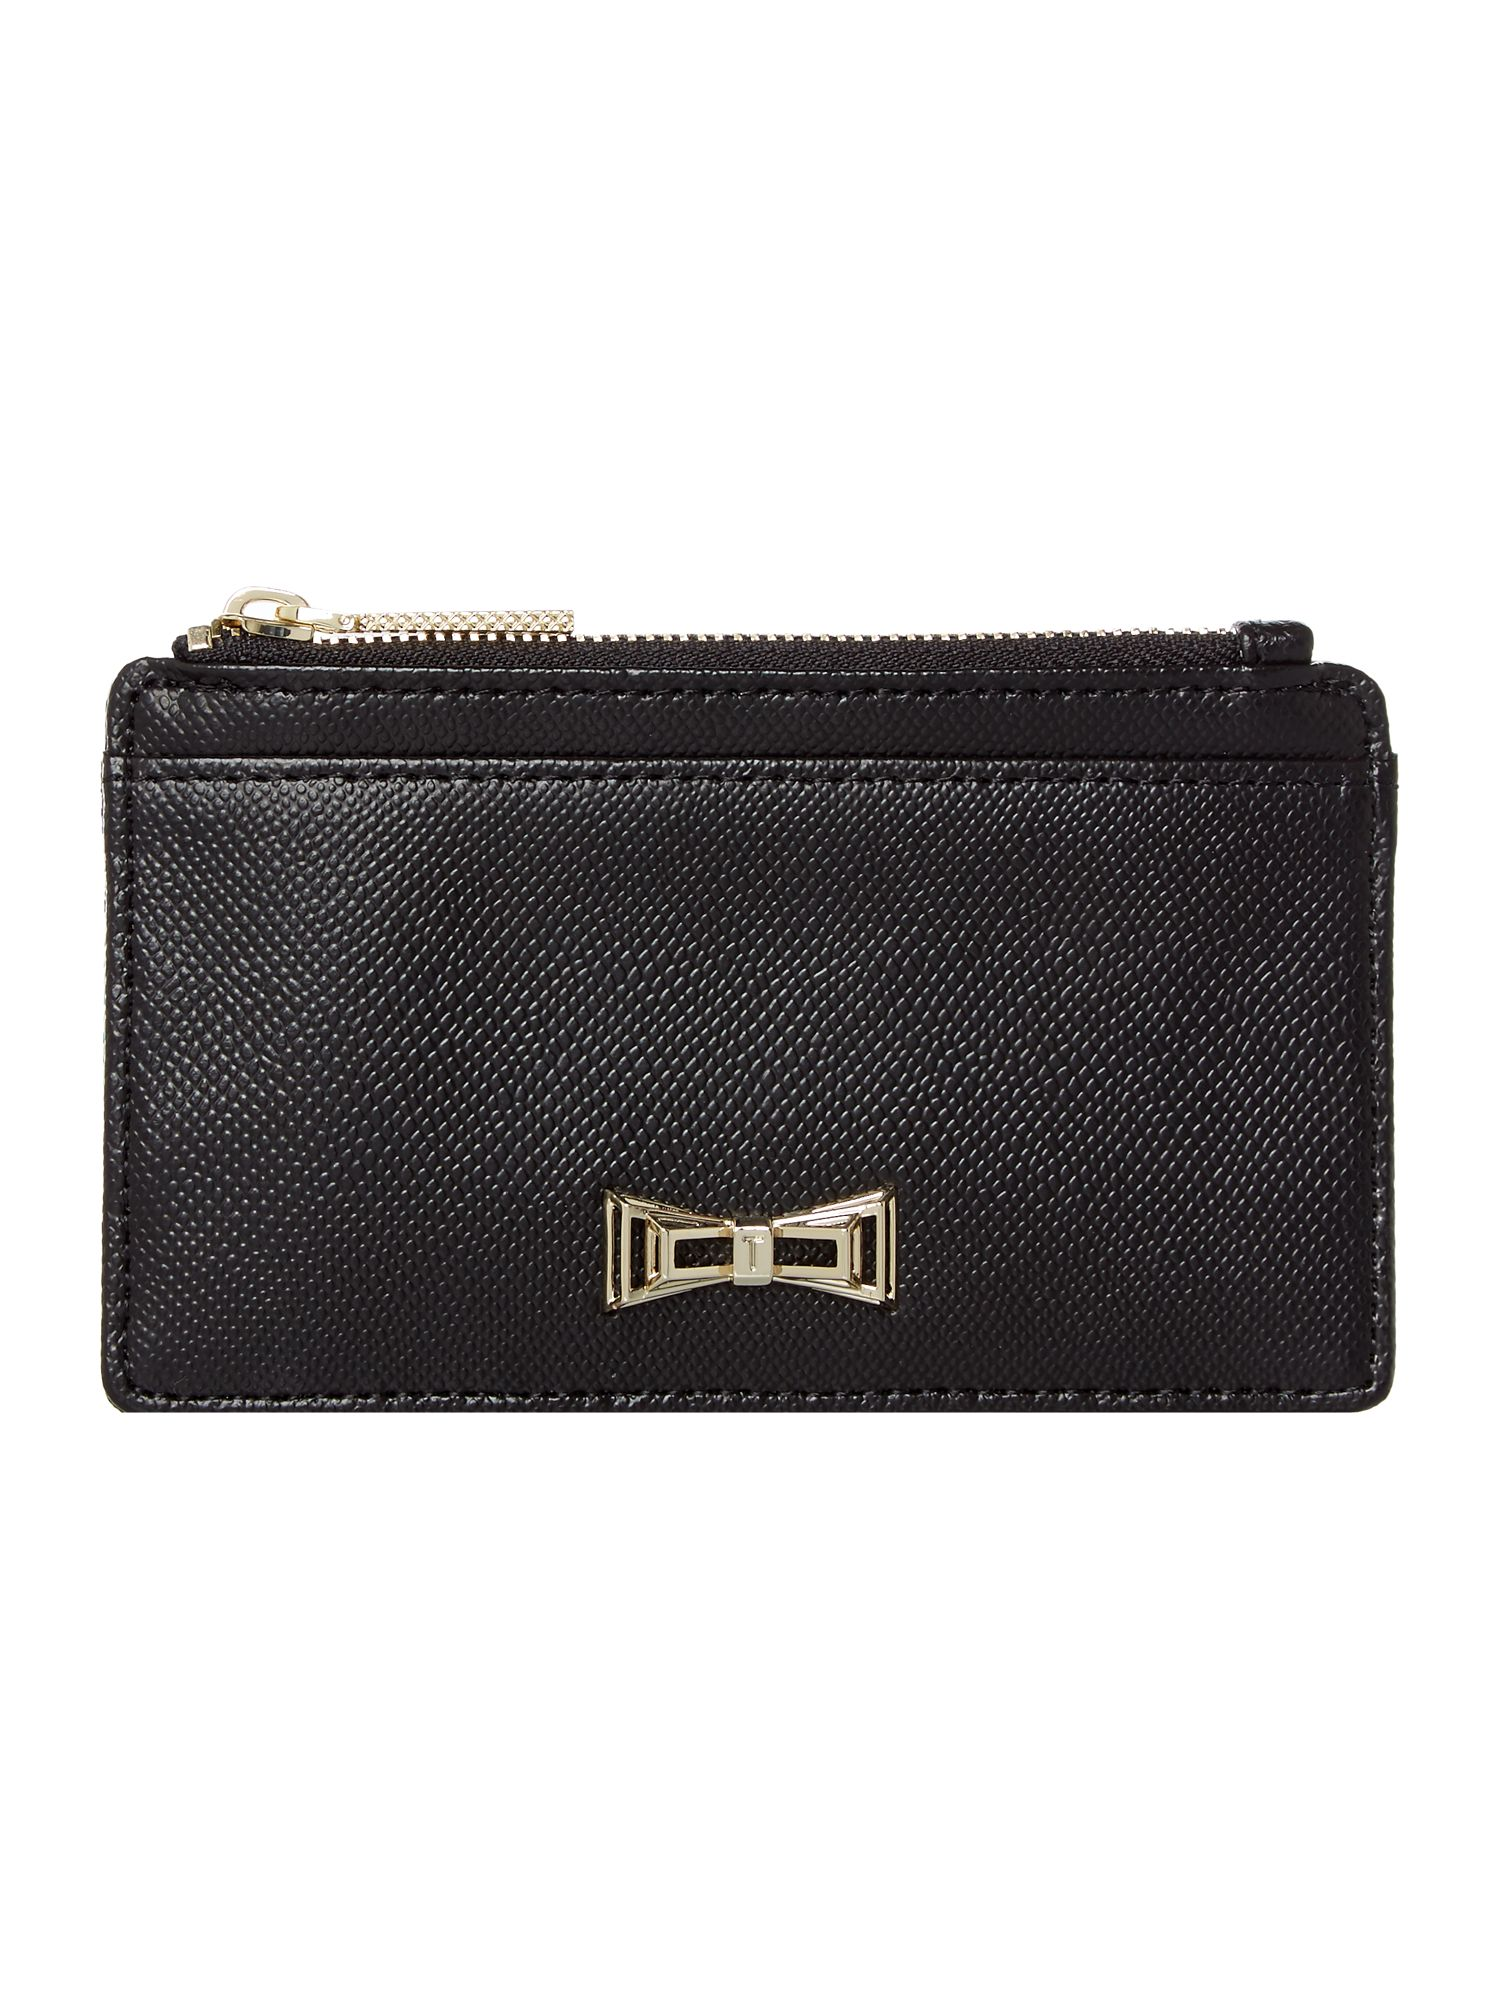 Ted Baker Satina bow coin purse Black